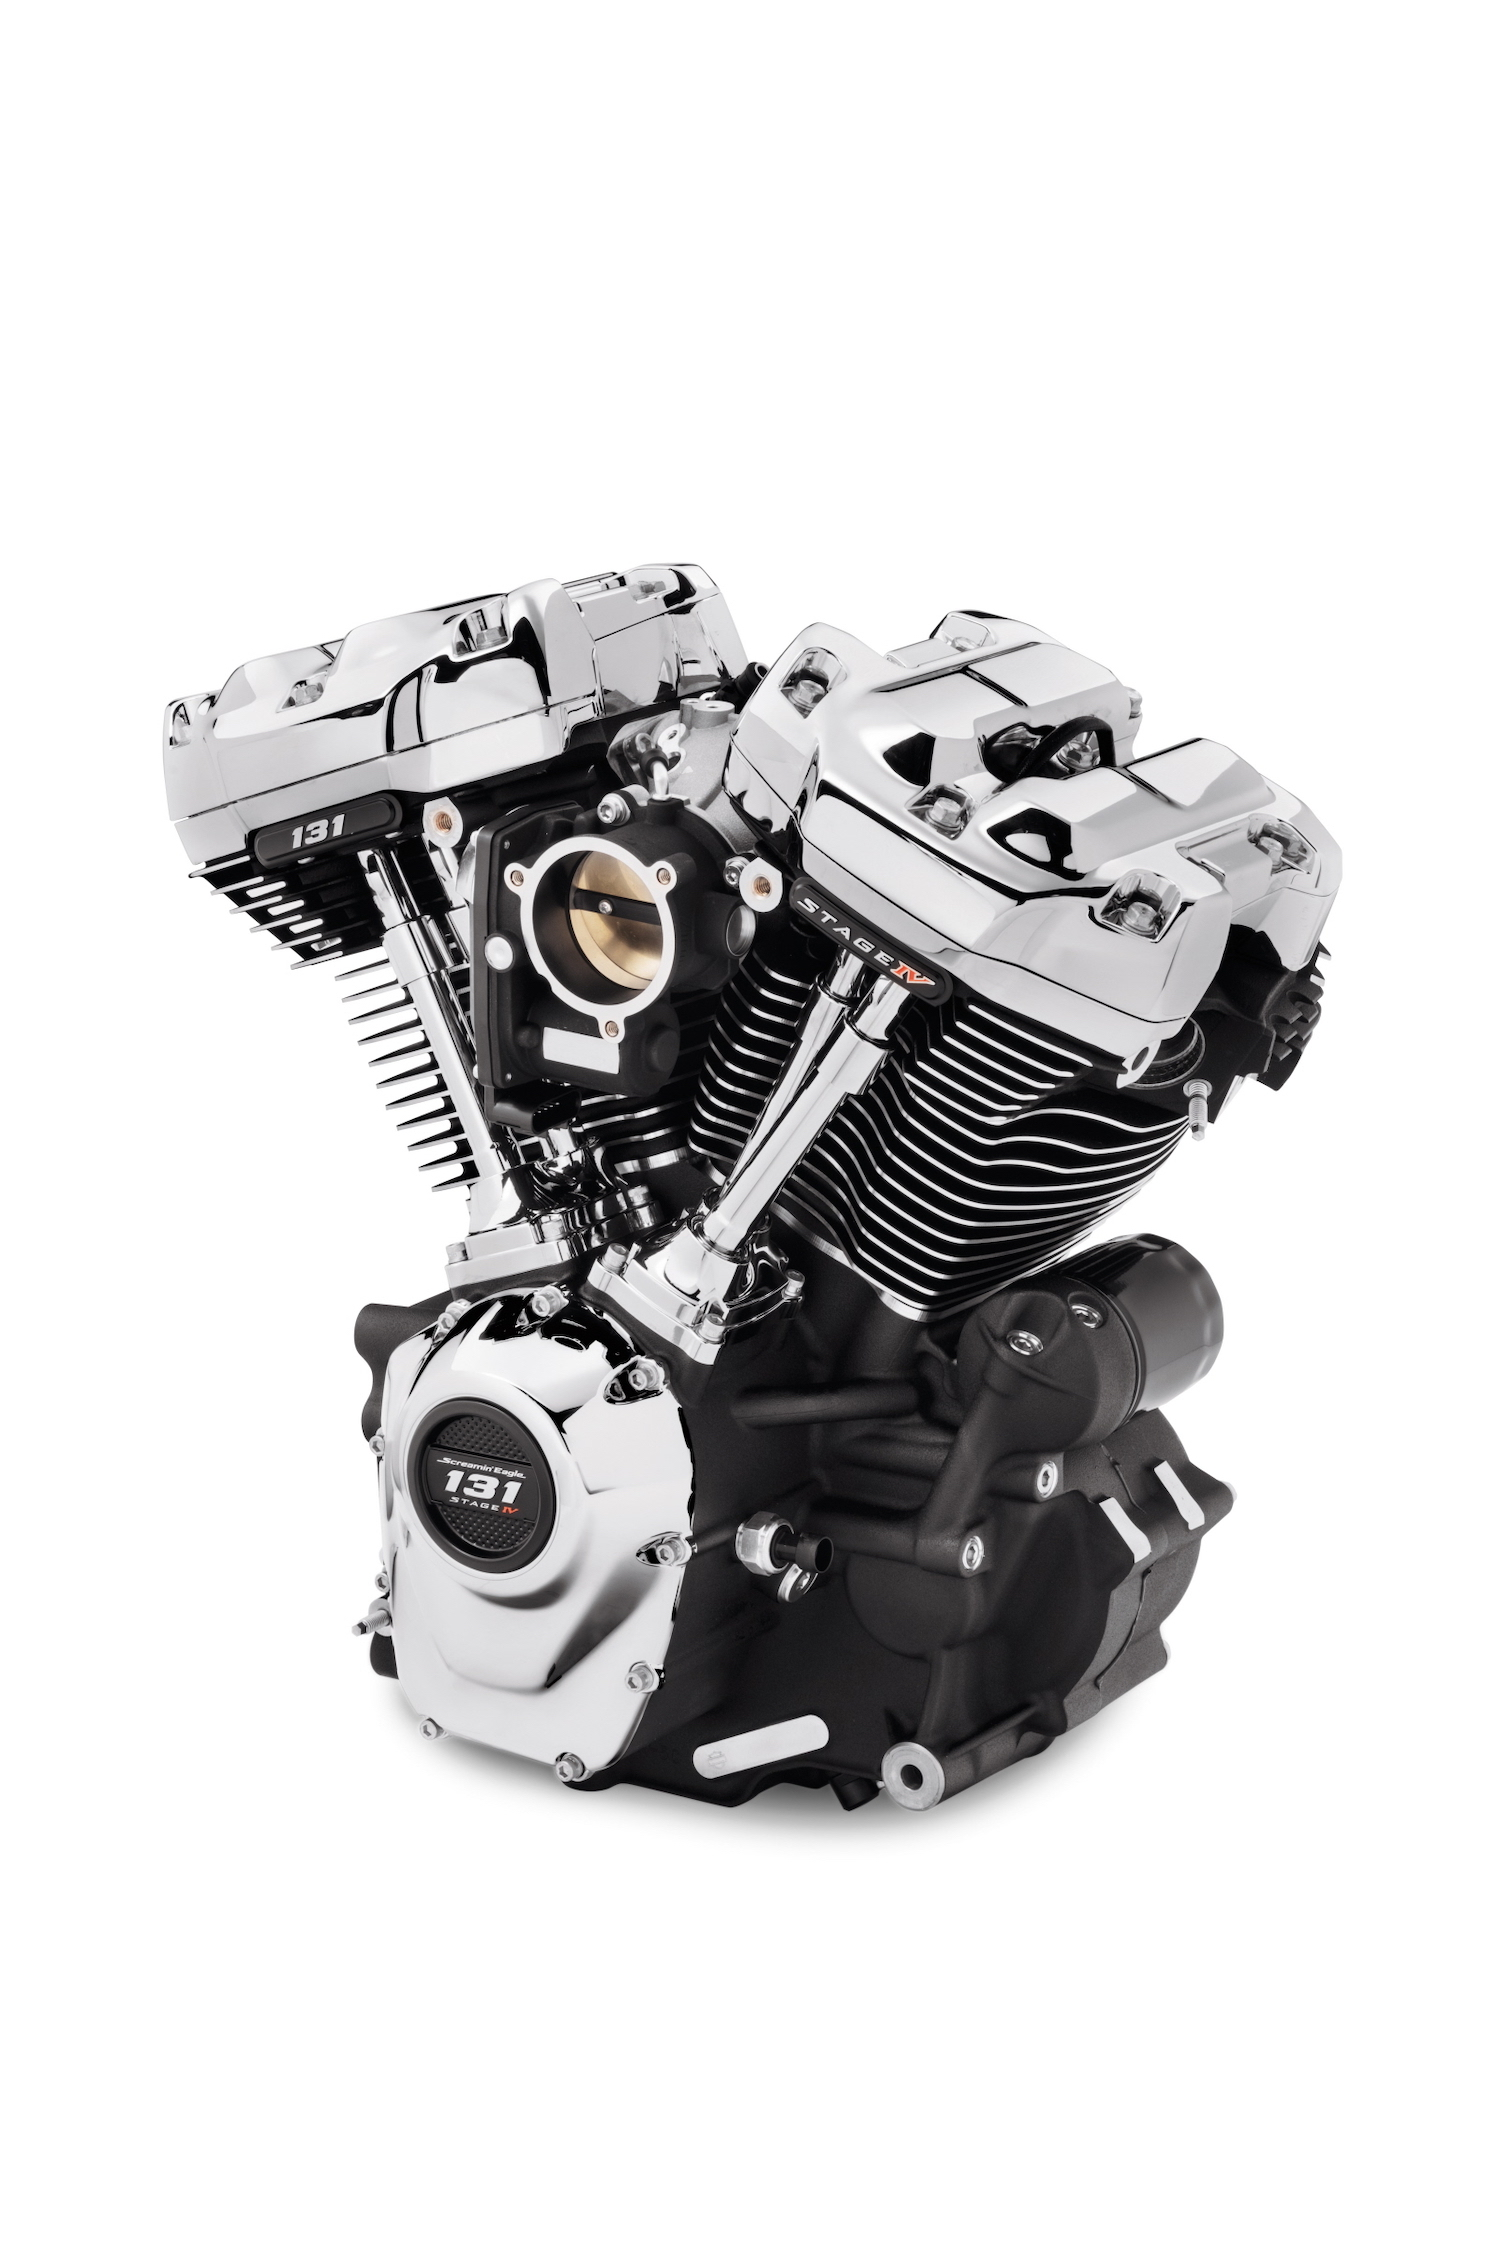 new screamin eagle 131 crate engine